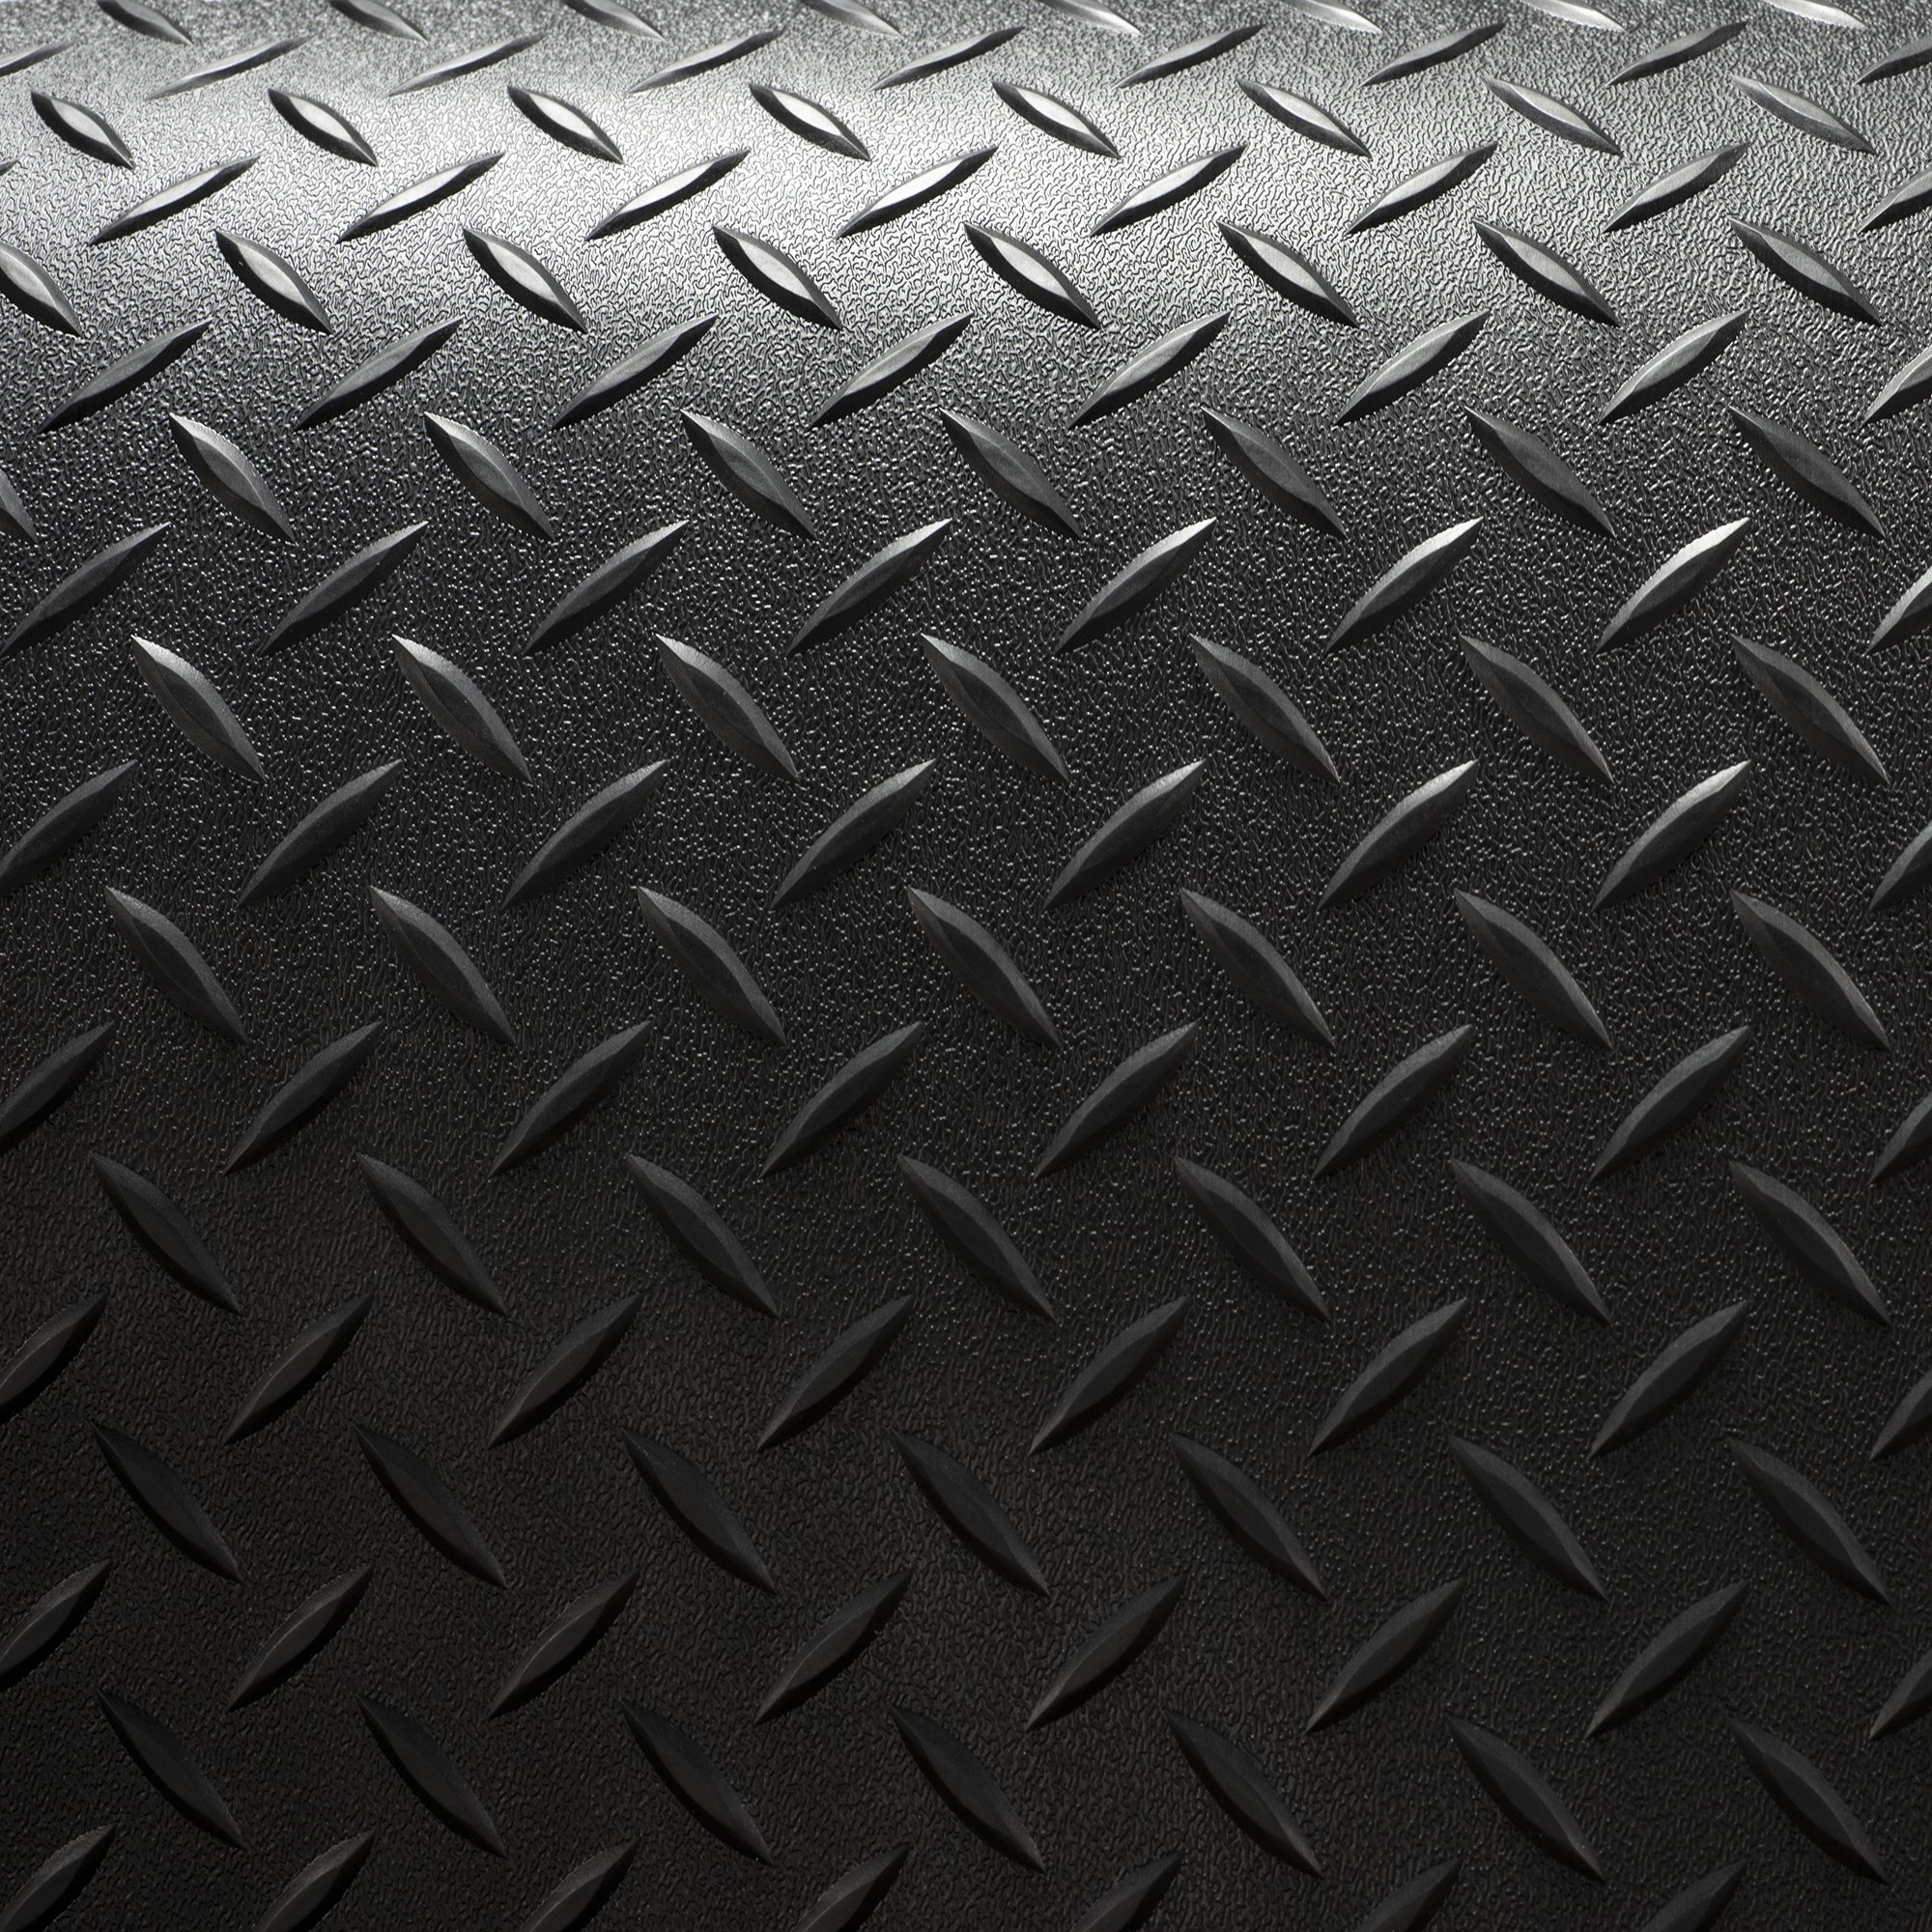 RV Trailer Diamond Plate Pattern Flooring | Black | 8' 2'' Wide | Rubber Flooring | Garage Flooring | Gym Flooring | Toy Hauler Flooring | Car Show Trailer Flooring (Black, 15') by RecPro (Image #4)